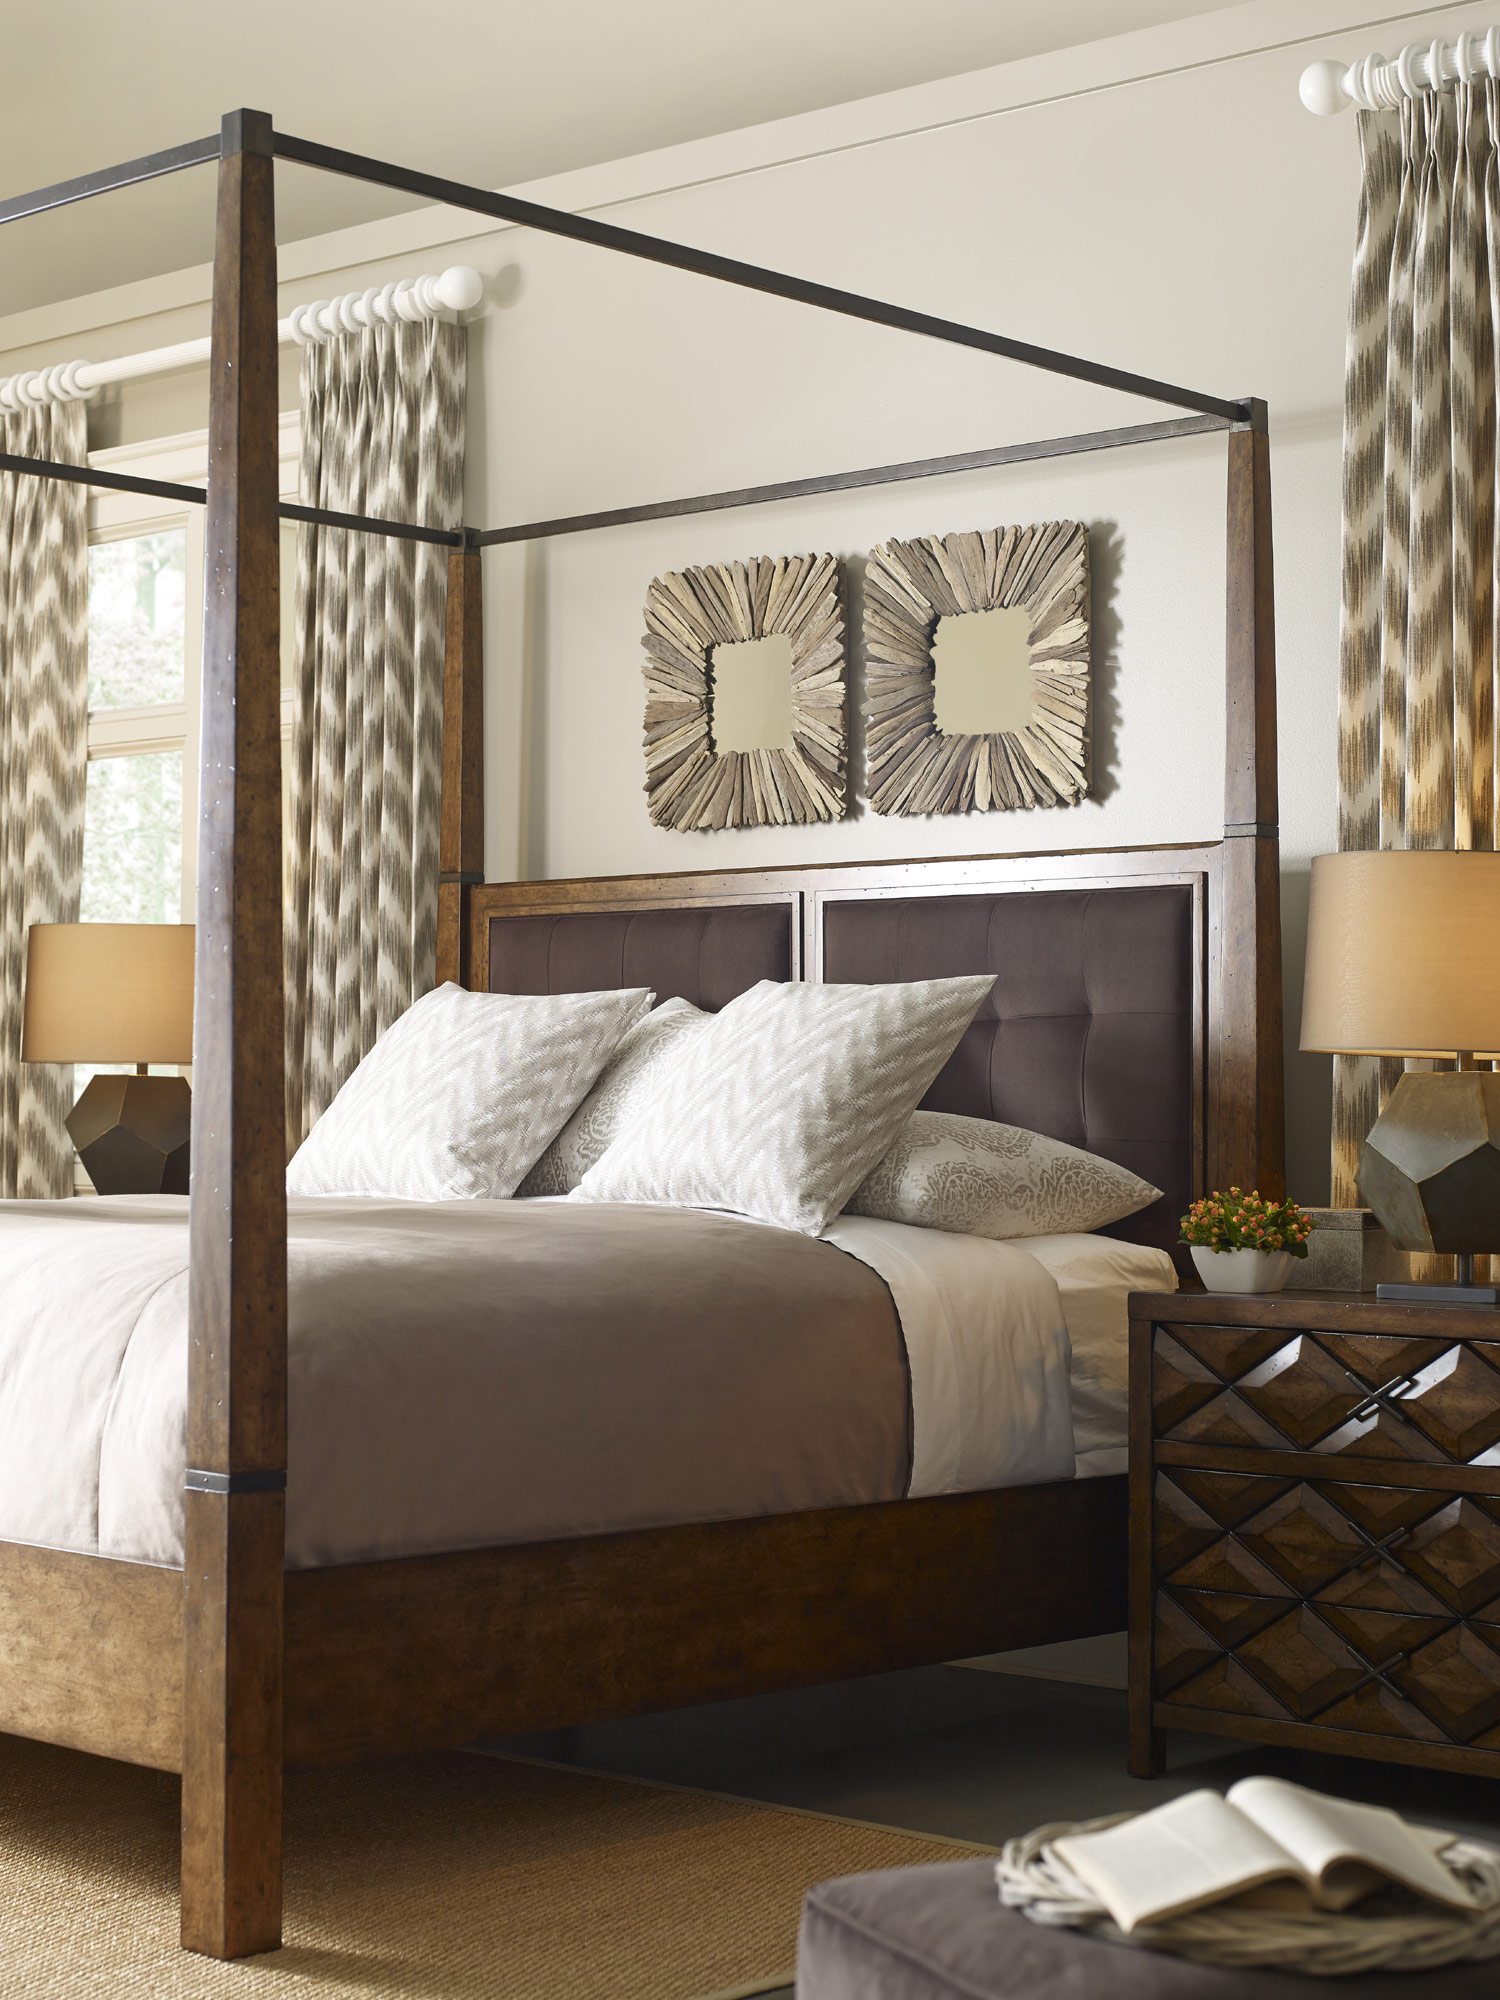 Echo Park King Canopy Bedroom Set | A.R.T. Furniture | Home ...